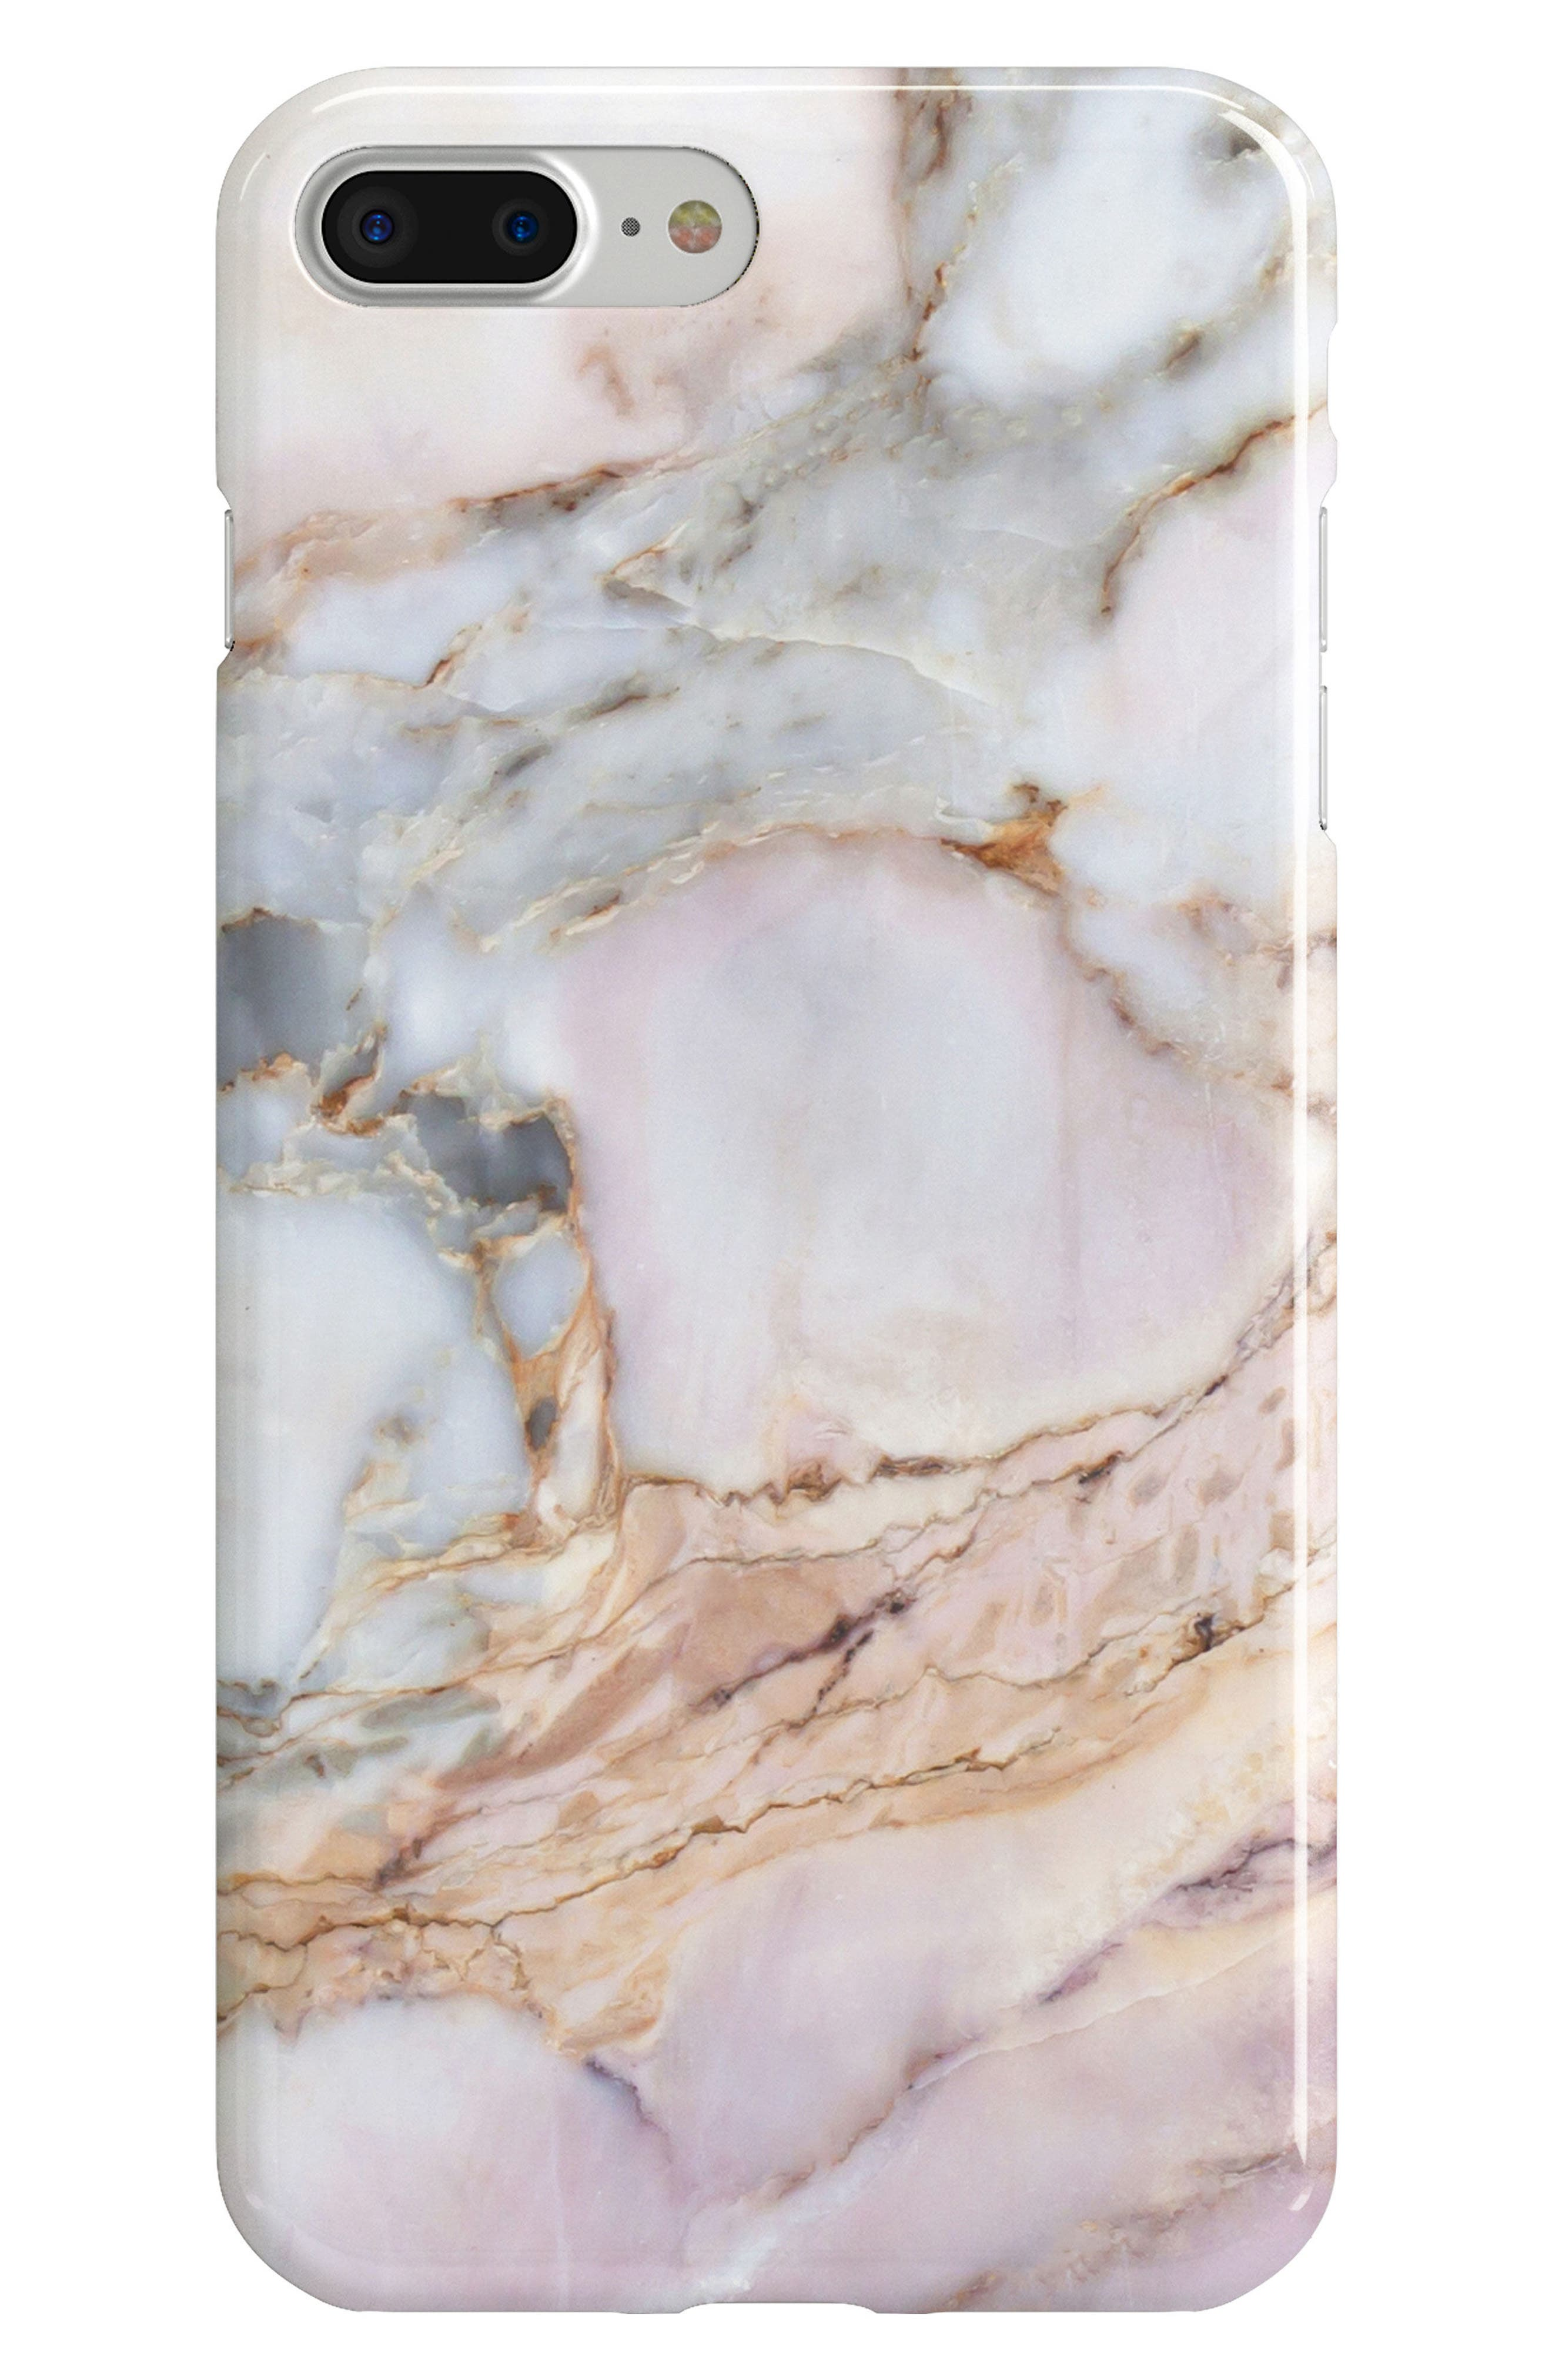 iphone 8 cell phone casesWhere To Buy Iphone 8 Cases Iphone 8 Cases Iphone 8 Case Custom Design Best Cases Iphone 8 Leather Case For Iphone 8 Louis Vuitton #9